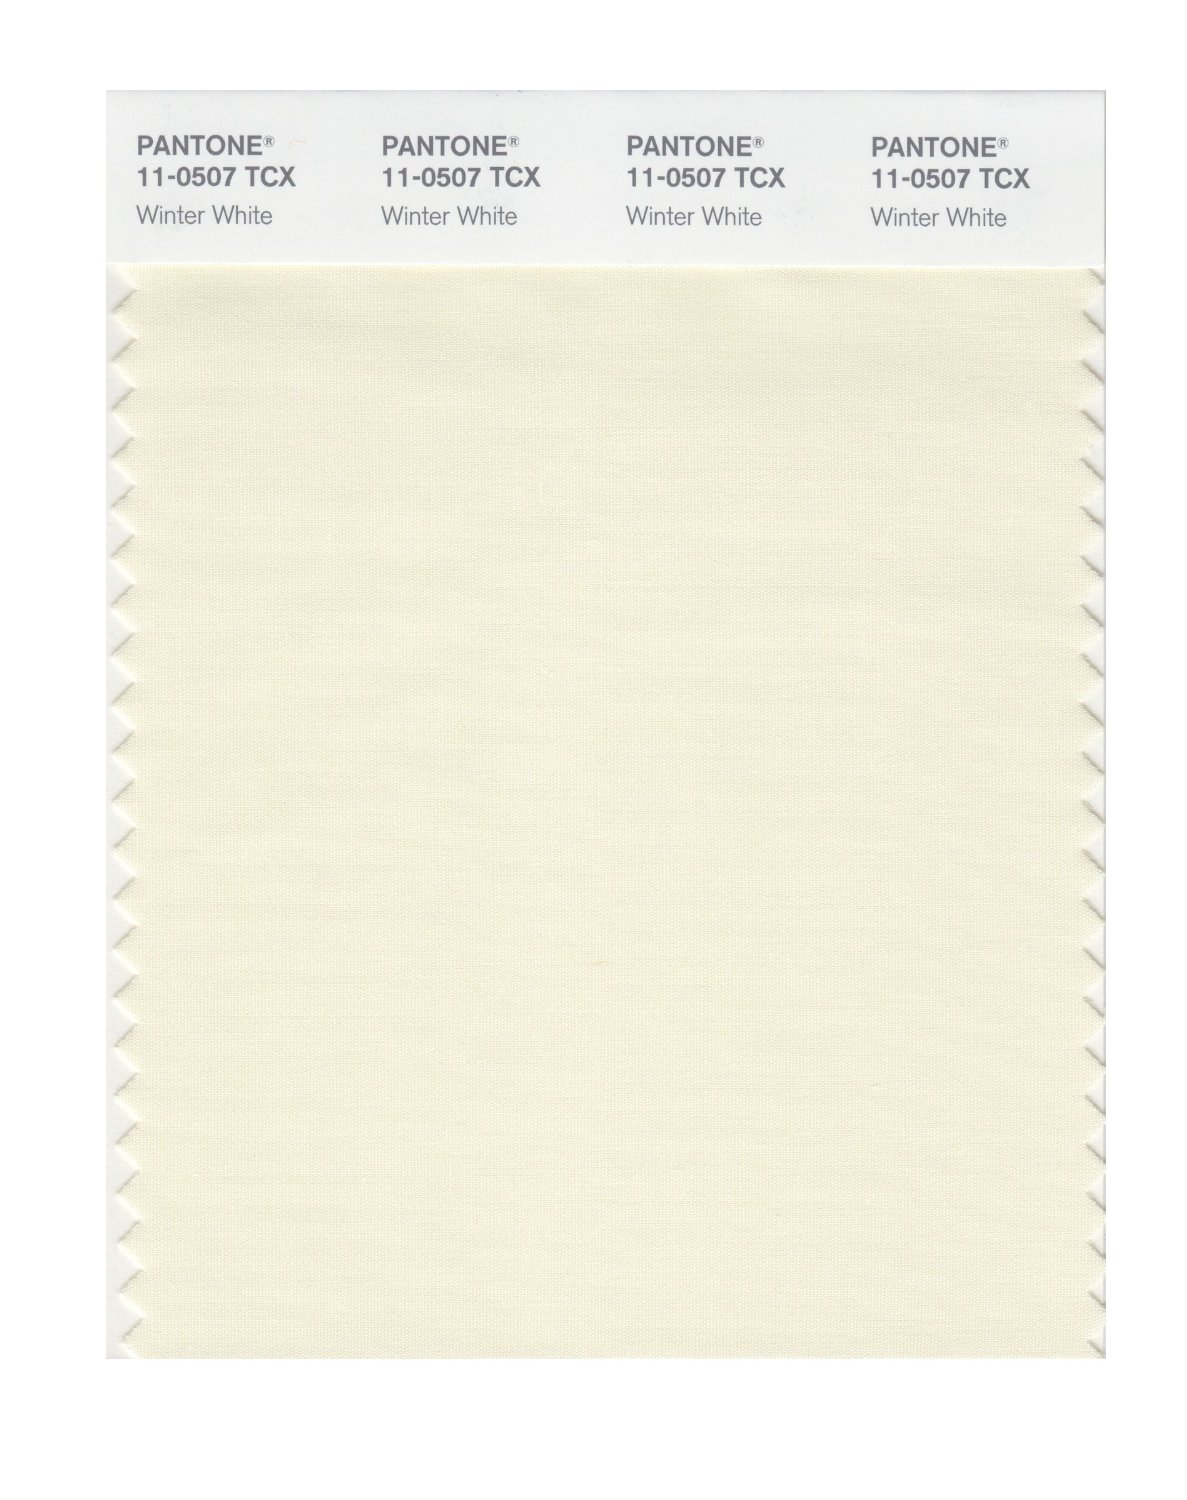 Pantone Smart Swatch 11-0507 Winter White